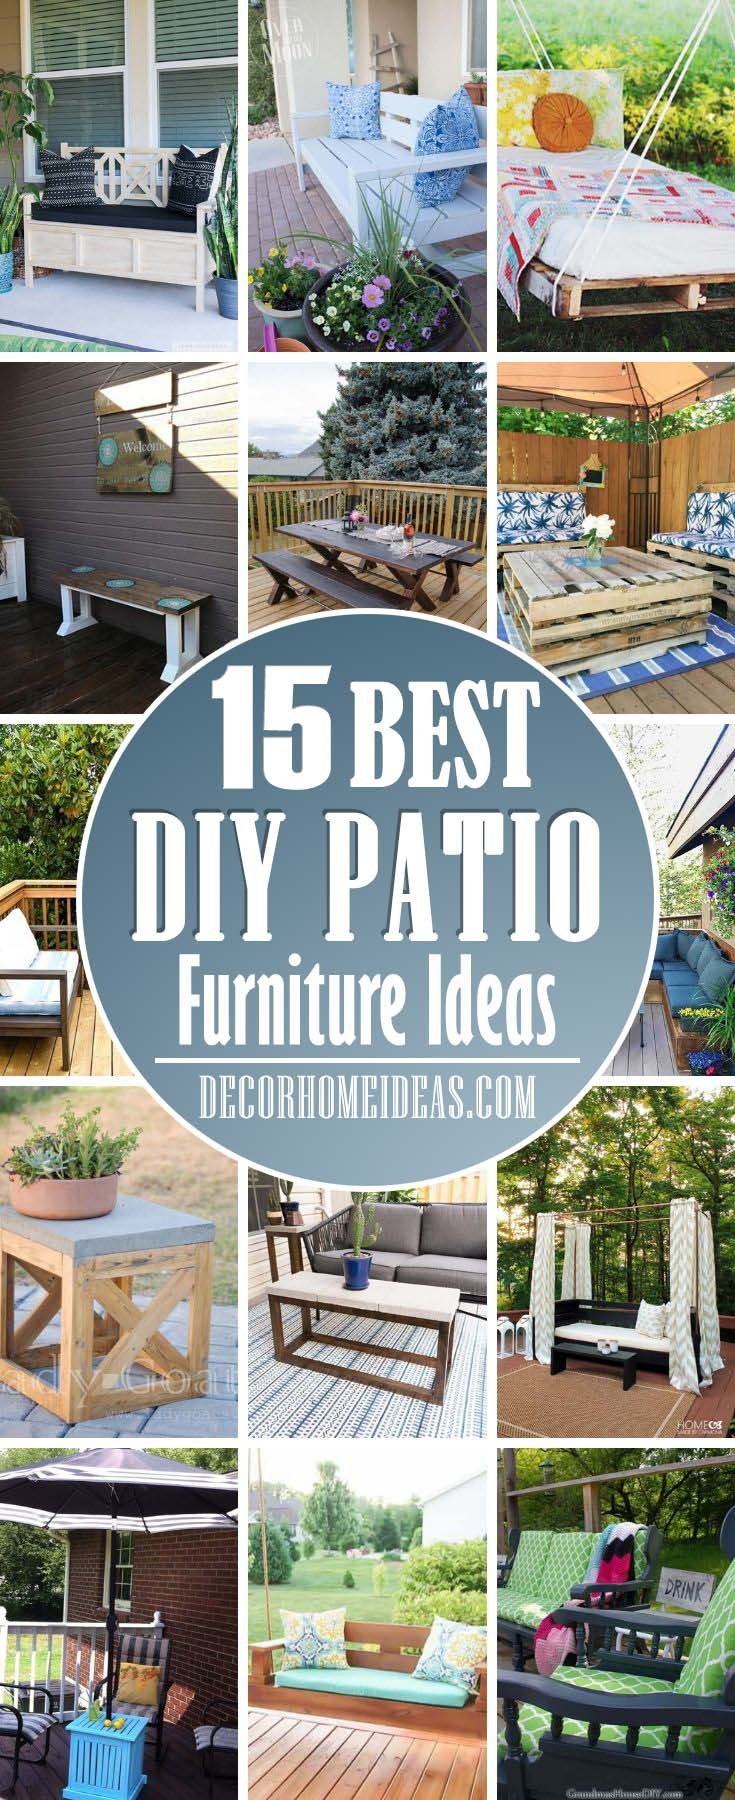 Creative DIY Patio Furniture Ideas. These budget-friendly DIY patio furniture ideas will drastically change the look of your outdoor area and won't cost you a fortune. #diy #patio #furniture #decorhomeideas